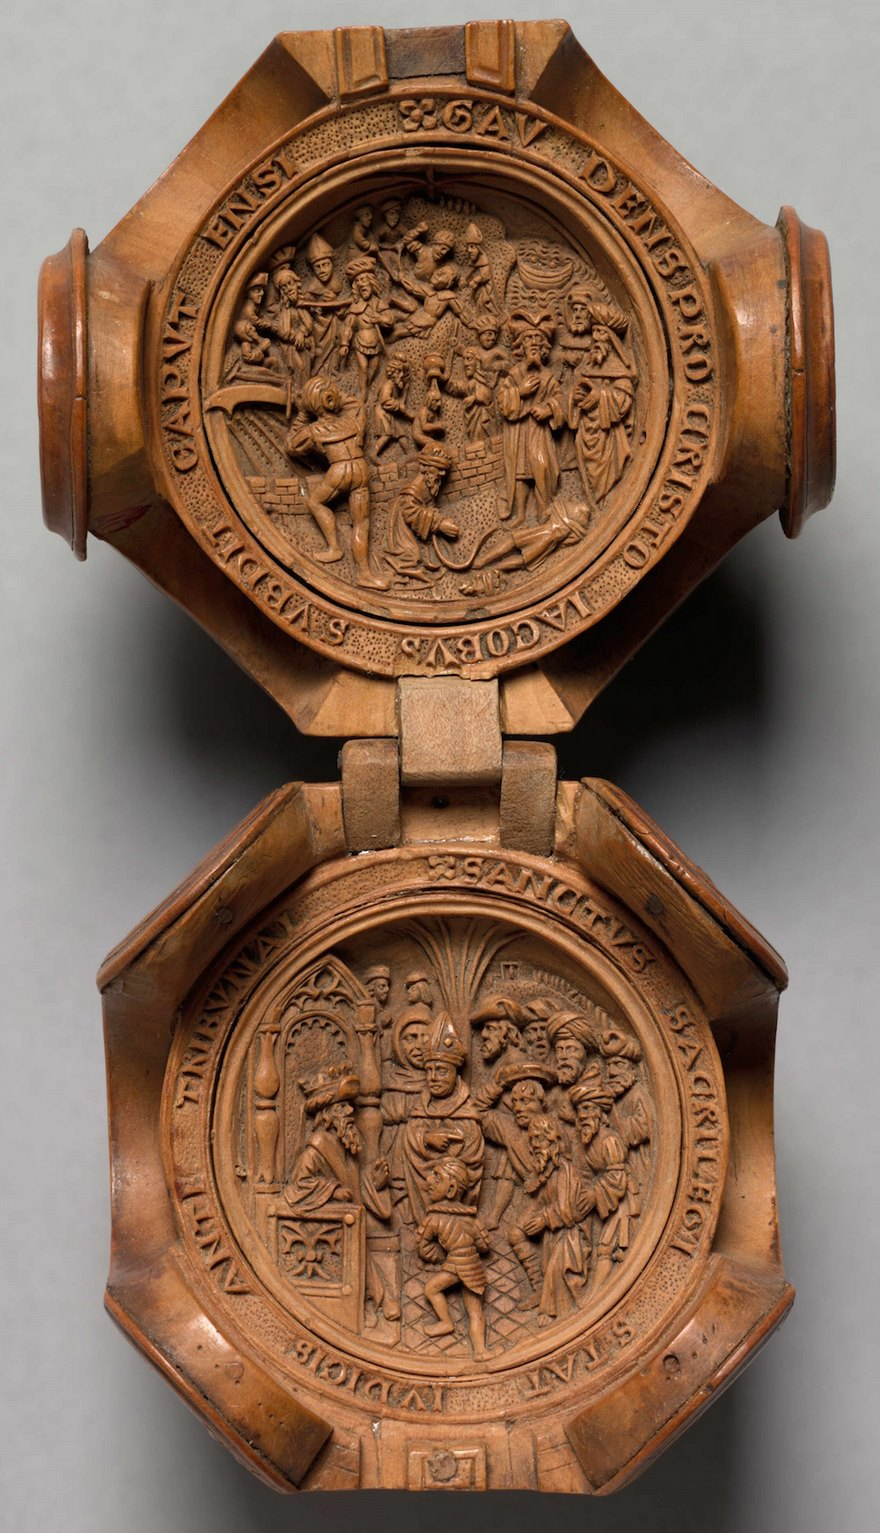 miniature boxwood carvings 16th century 7 - 16th Century Boxwood Carvings Are So Tiny That Researchers Need To Use CT-scanning For Their Research